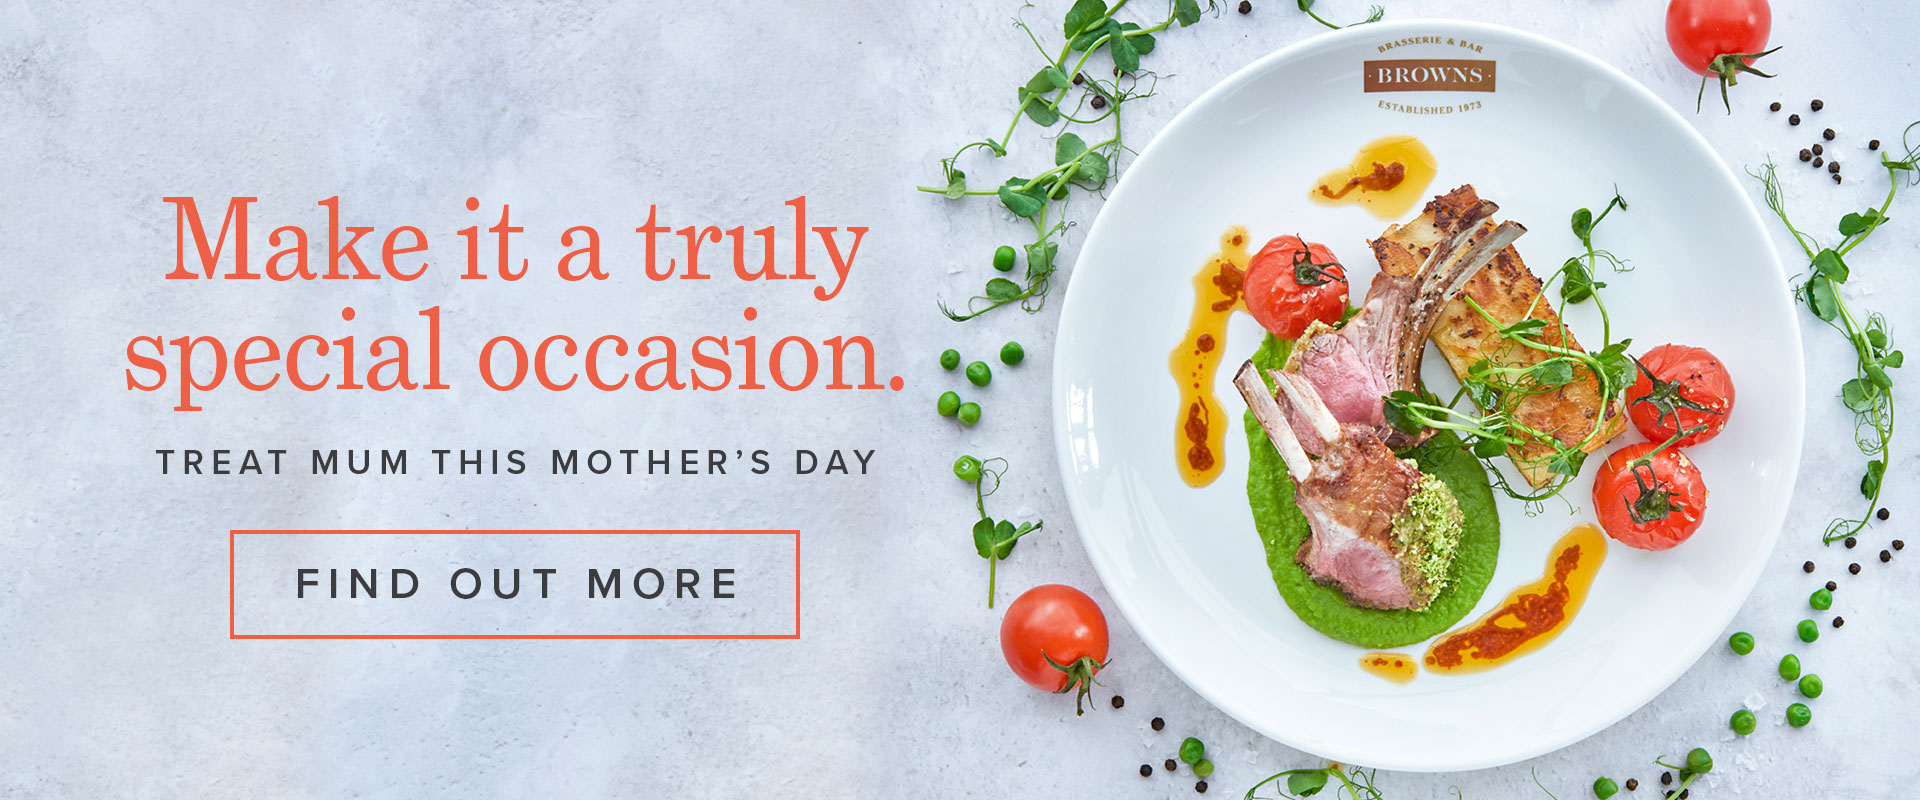 Mother's Day 2019 at Browns Bristol